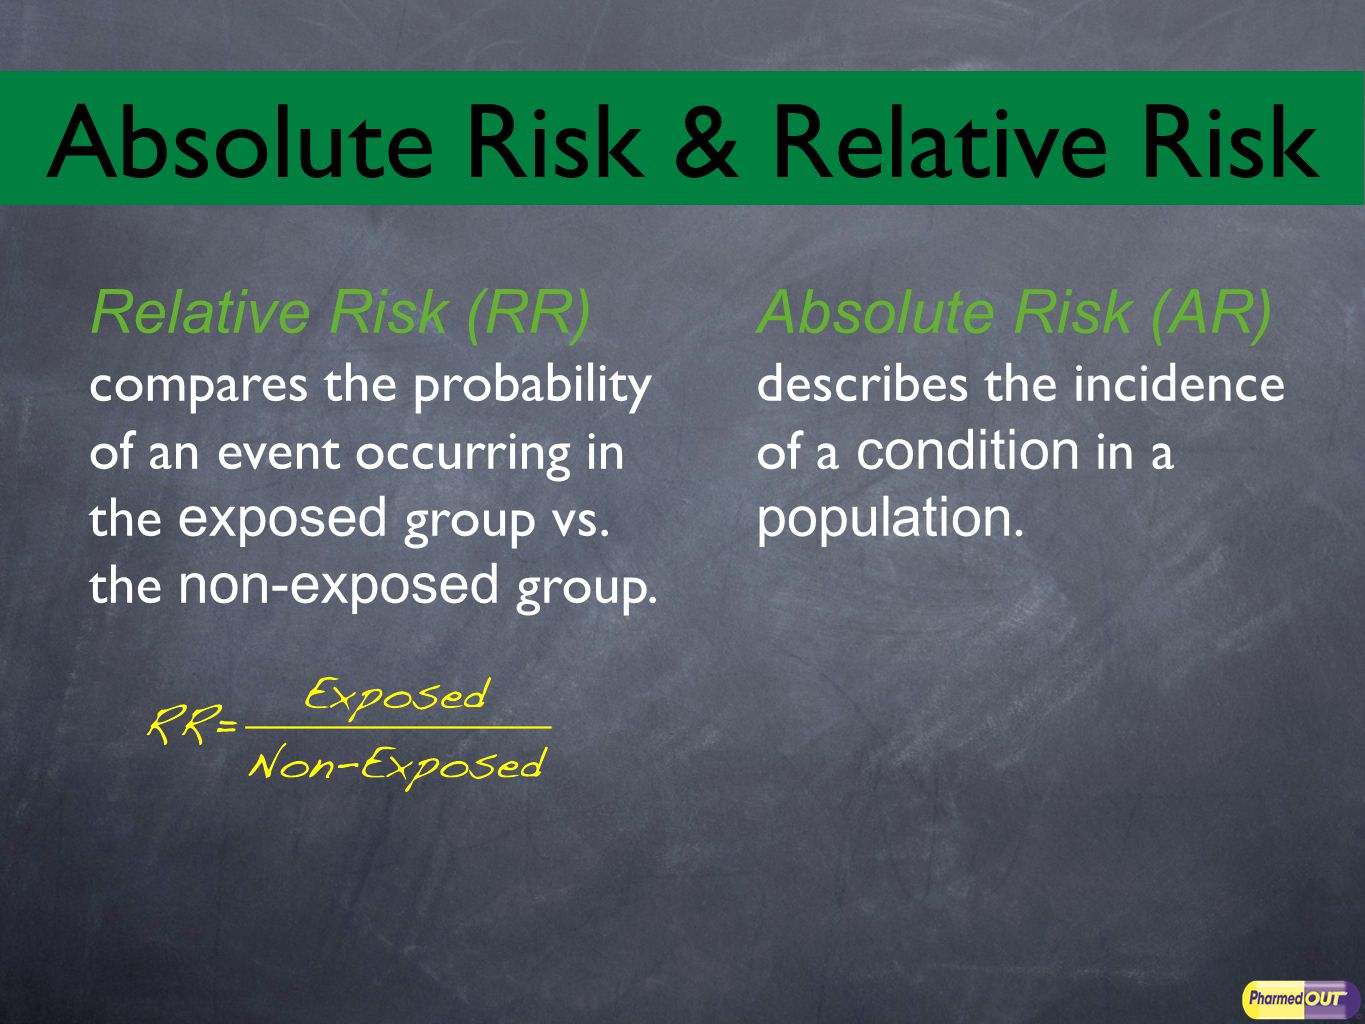 Now you understand the difference between absolute and relative risk, and you can calculate NNT and NNH.